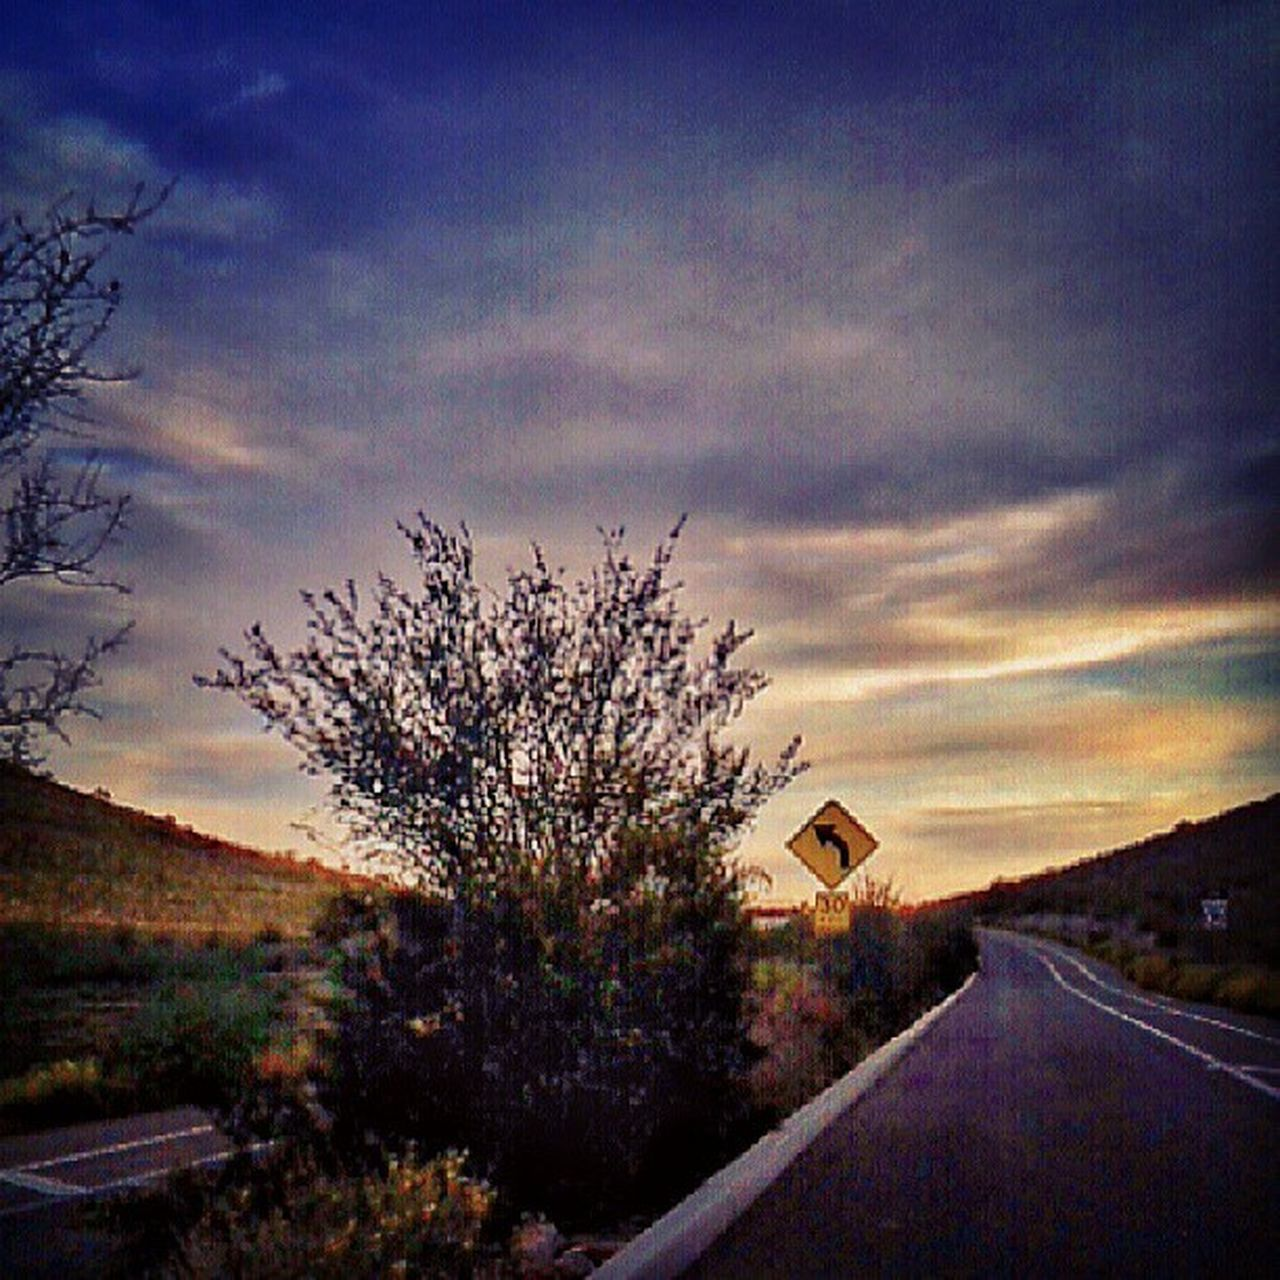 Instagramaz Glendaleaz Igersphx Igarizona Eveningdrive Sunsets Ontheroad Overthemountain Pinnaclepeak Desert Median Bushes Landscape Beautifulscene Cloudporn Skyporn Citylifeinaz Speedsign 30mph Instasky Instagramhub Igersonly Goodevening  Arizona Arizonahighways @arizonaskies @sunsetsgram @ibeautyofnature nature pixlrexpress drivebyphoto loveit peaceful :)